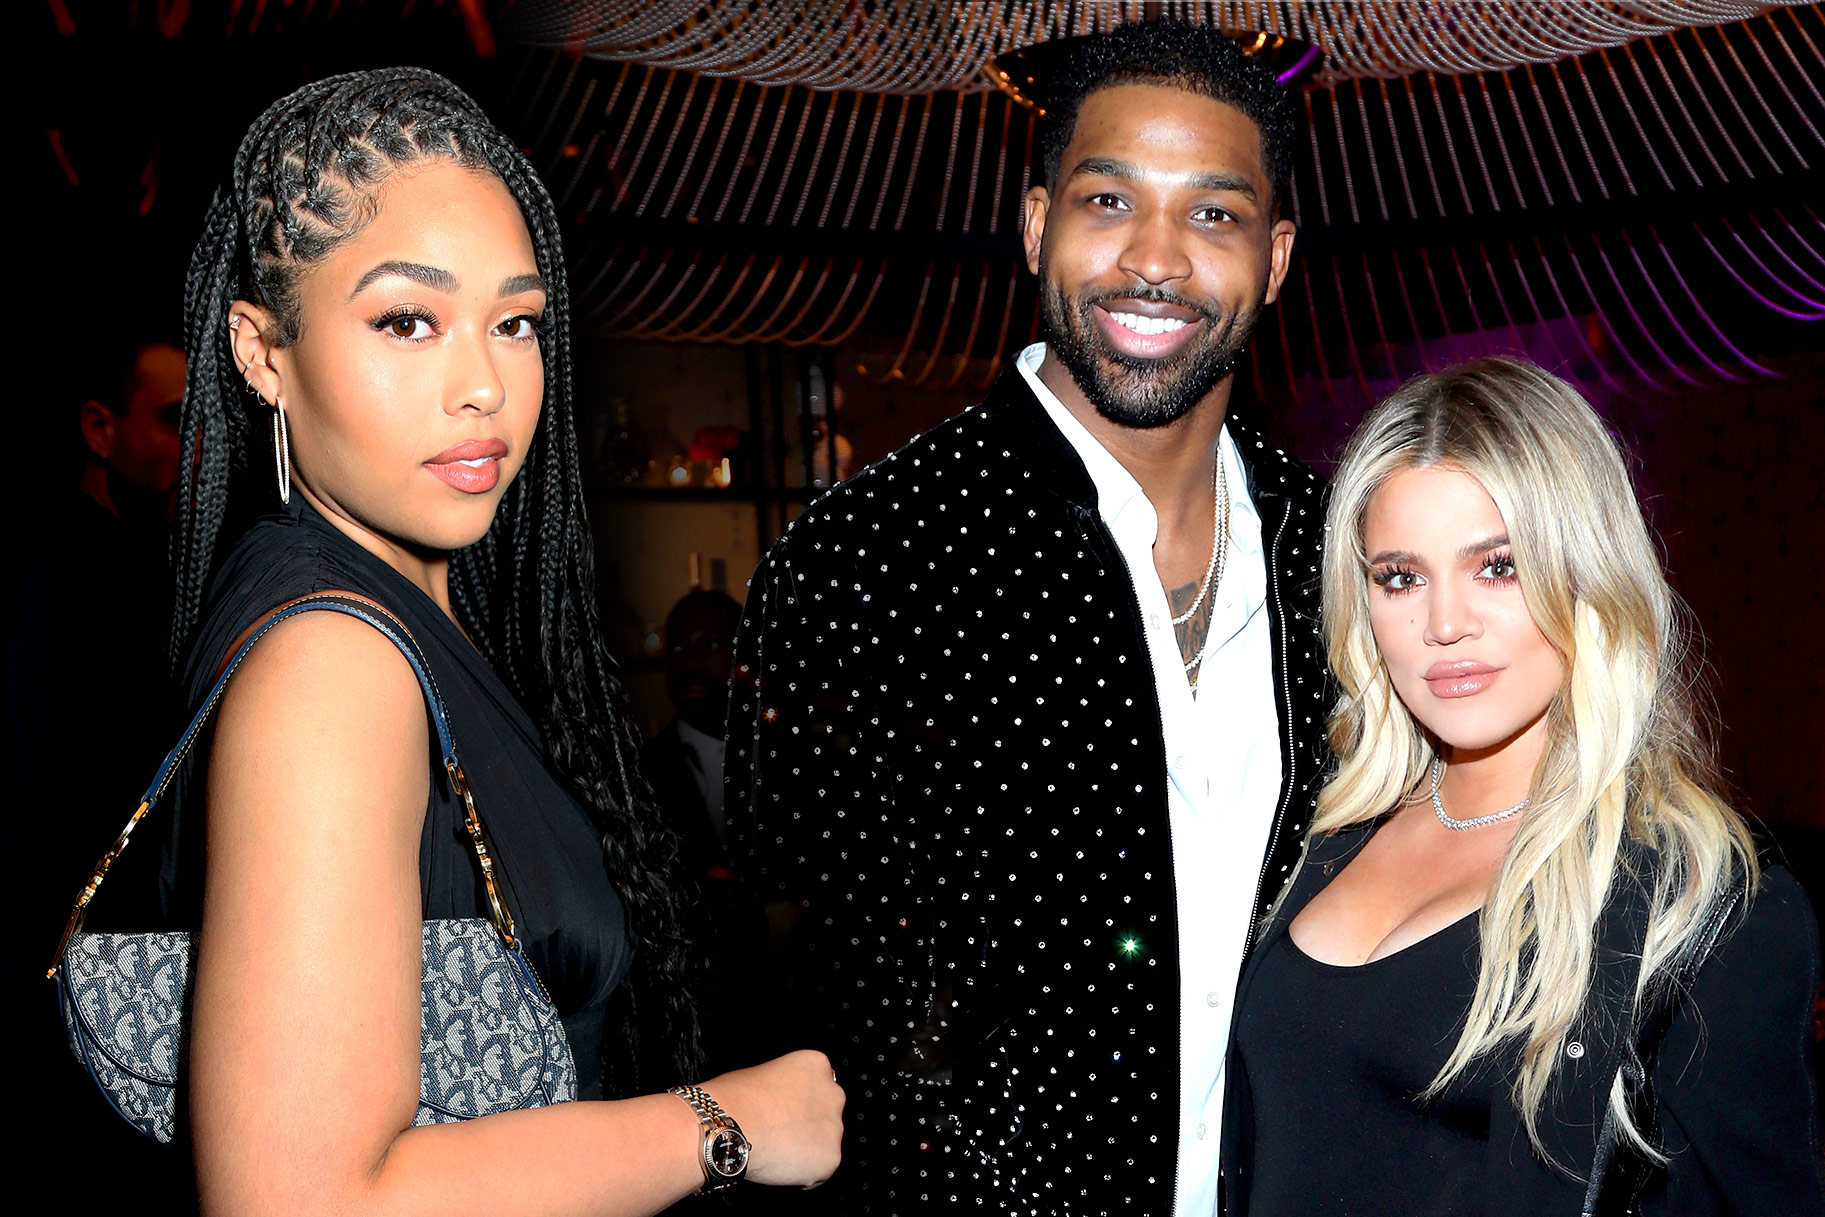 Jordyn, Tristan and Khloe